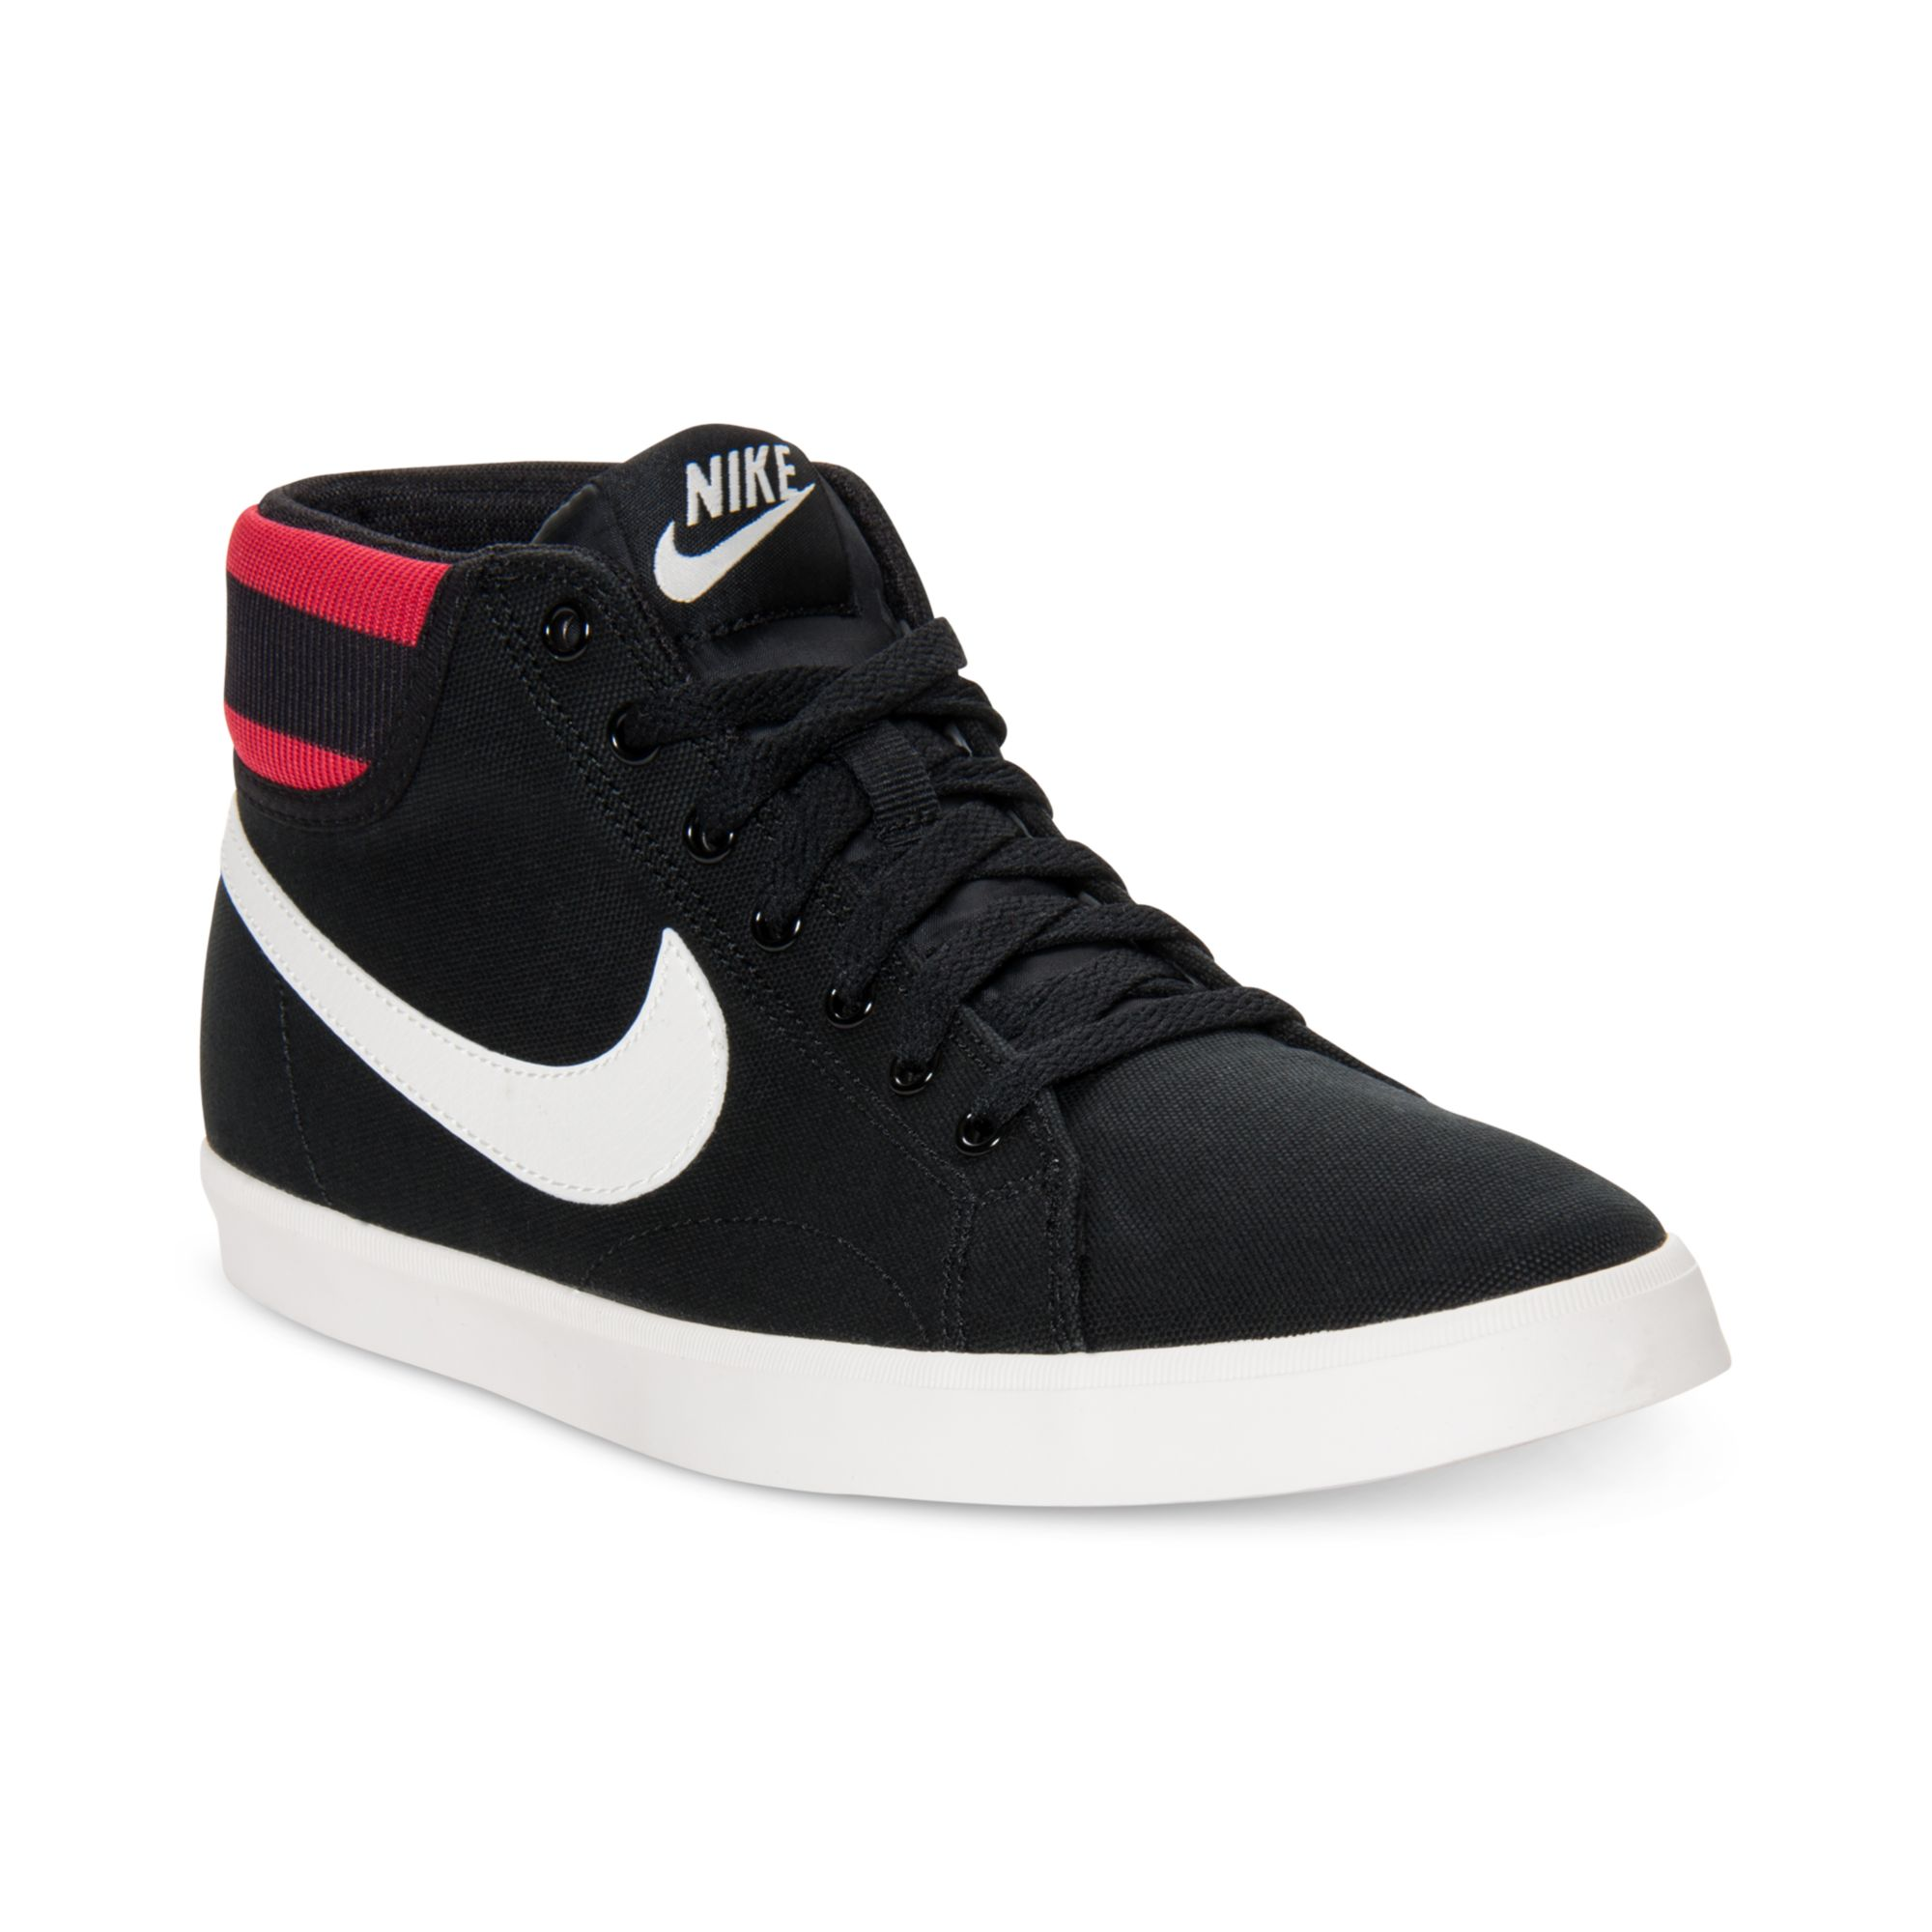 new arrivals 8562b f9455 Nike Eastham Mid Trainer Sneakers in Black for Men - Lyst